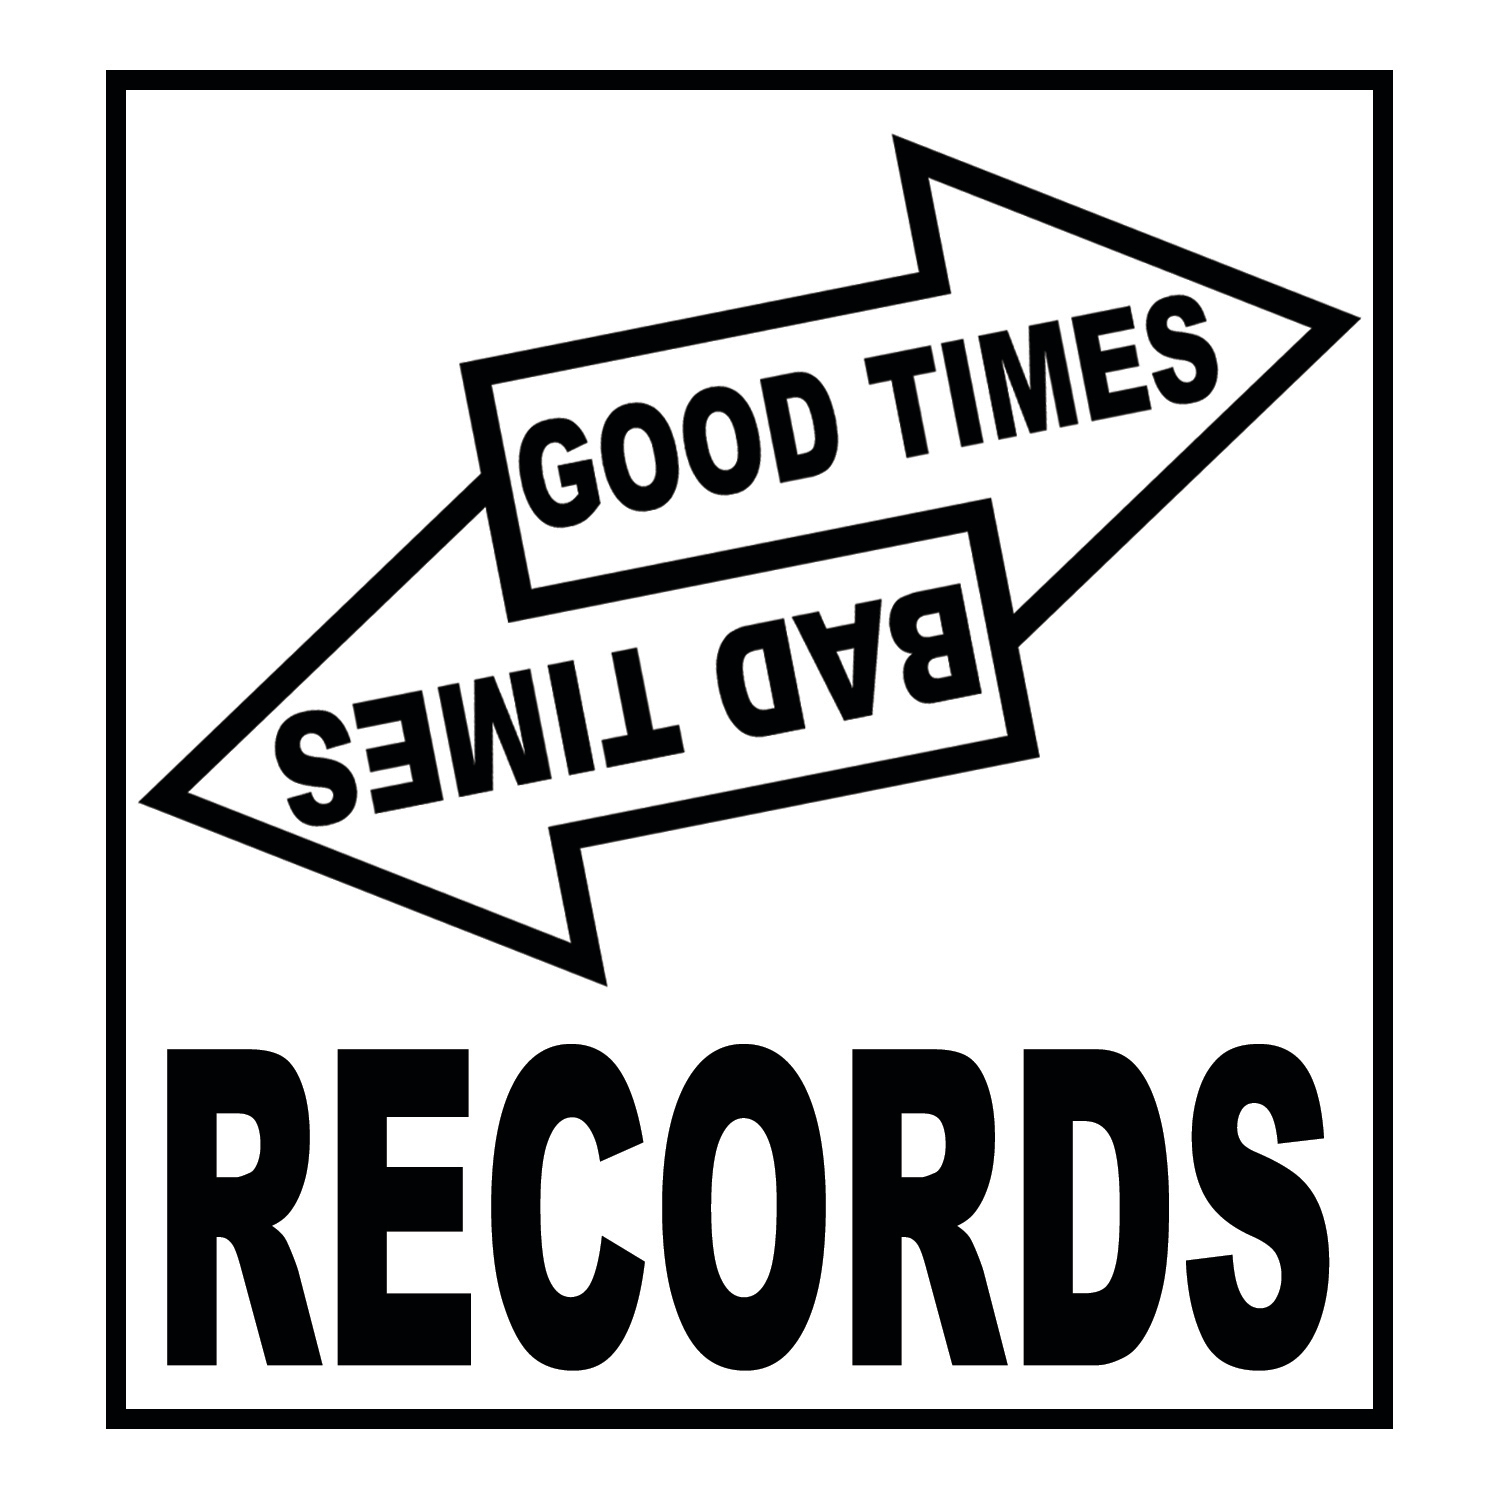 Good Times / Bad Times Records